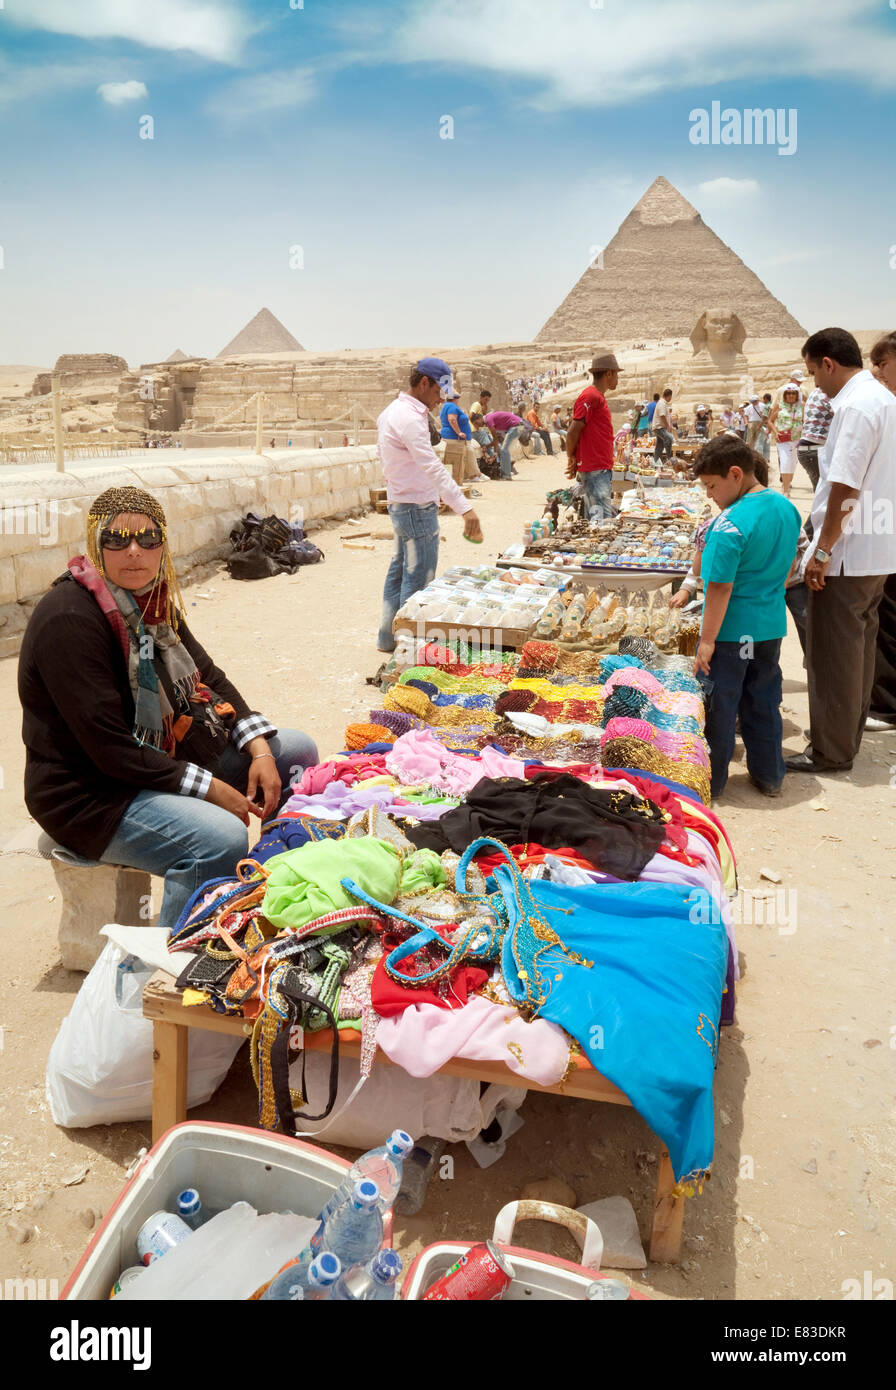 Egyptian traders and their stalls at the pyramids, Giza, Cairo, Egypt, Africa - Stock Image